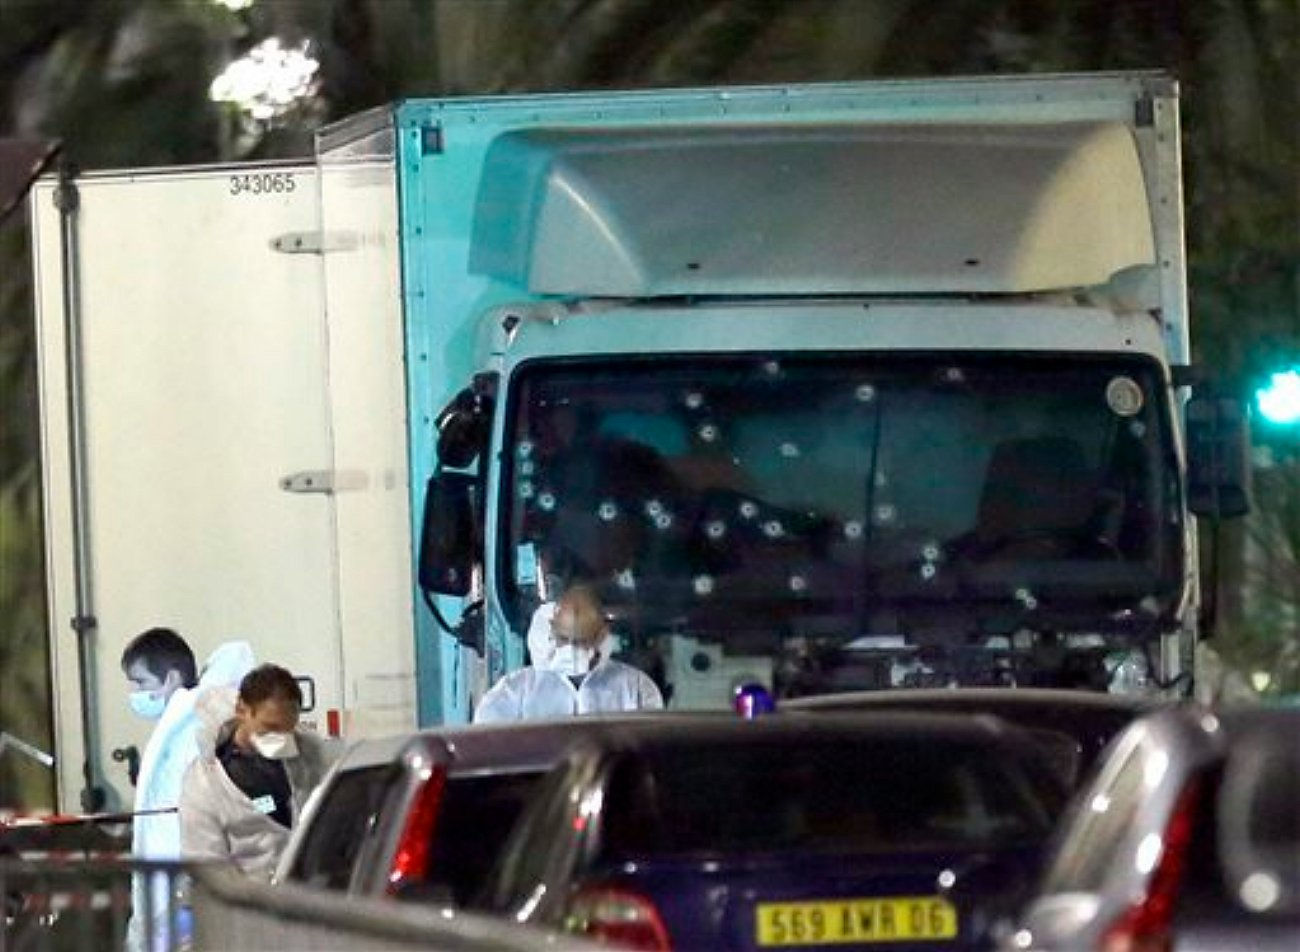 Forensic officers stands near a truck with its windscreen riddled with bullets, that plowed through a crowd of revelers who'd gathered to watch the fireworks in the French resort city of Nice, southern France, Friday, July 15, 2016. At least 80 people were killed before police killed the driver, authorities said, Nice France, July 15, 2016 | AP Photo by Claude Paris, St. George News